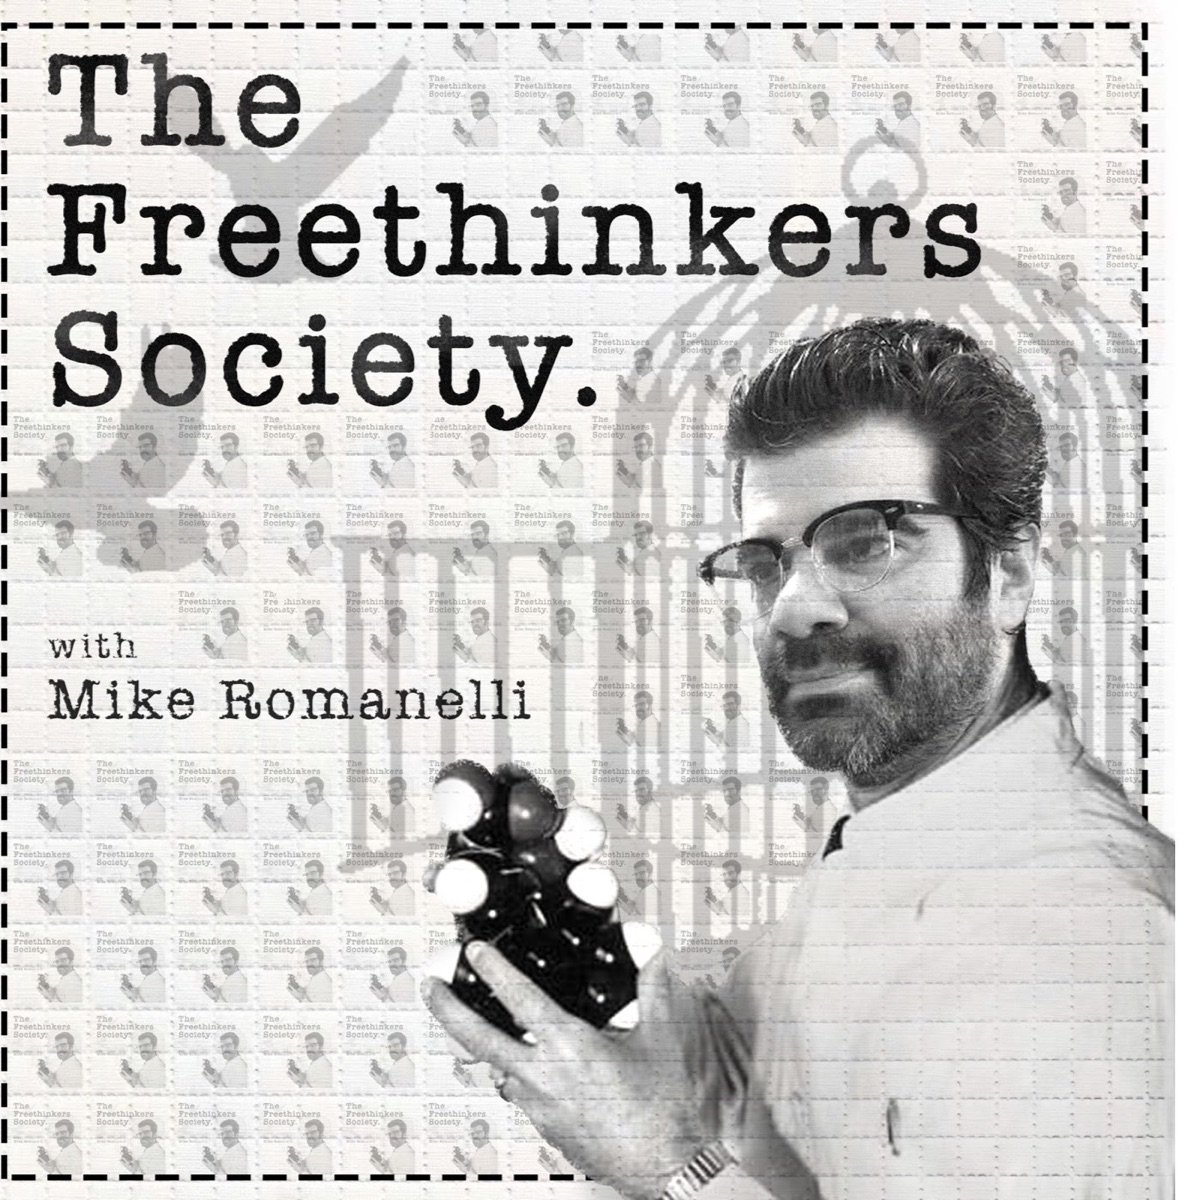 The Free Thinkers Society with Mike Romanelli